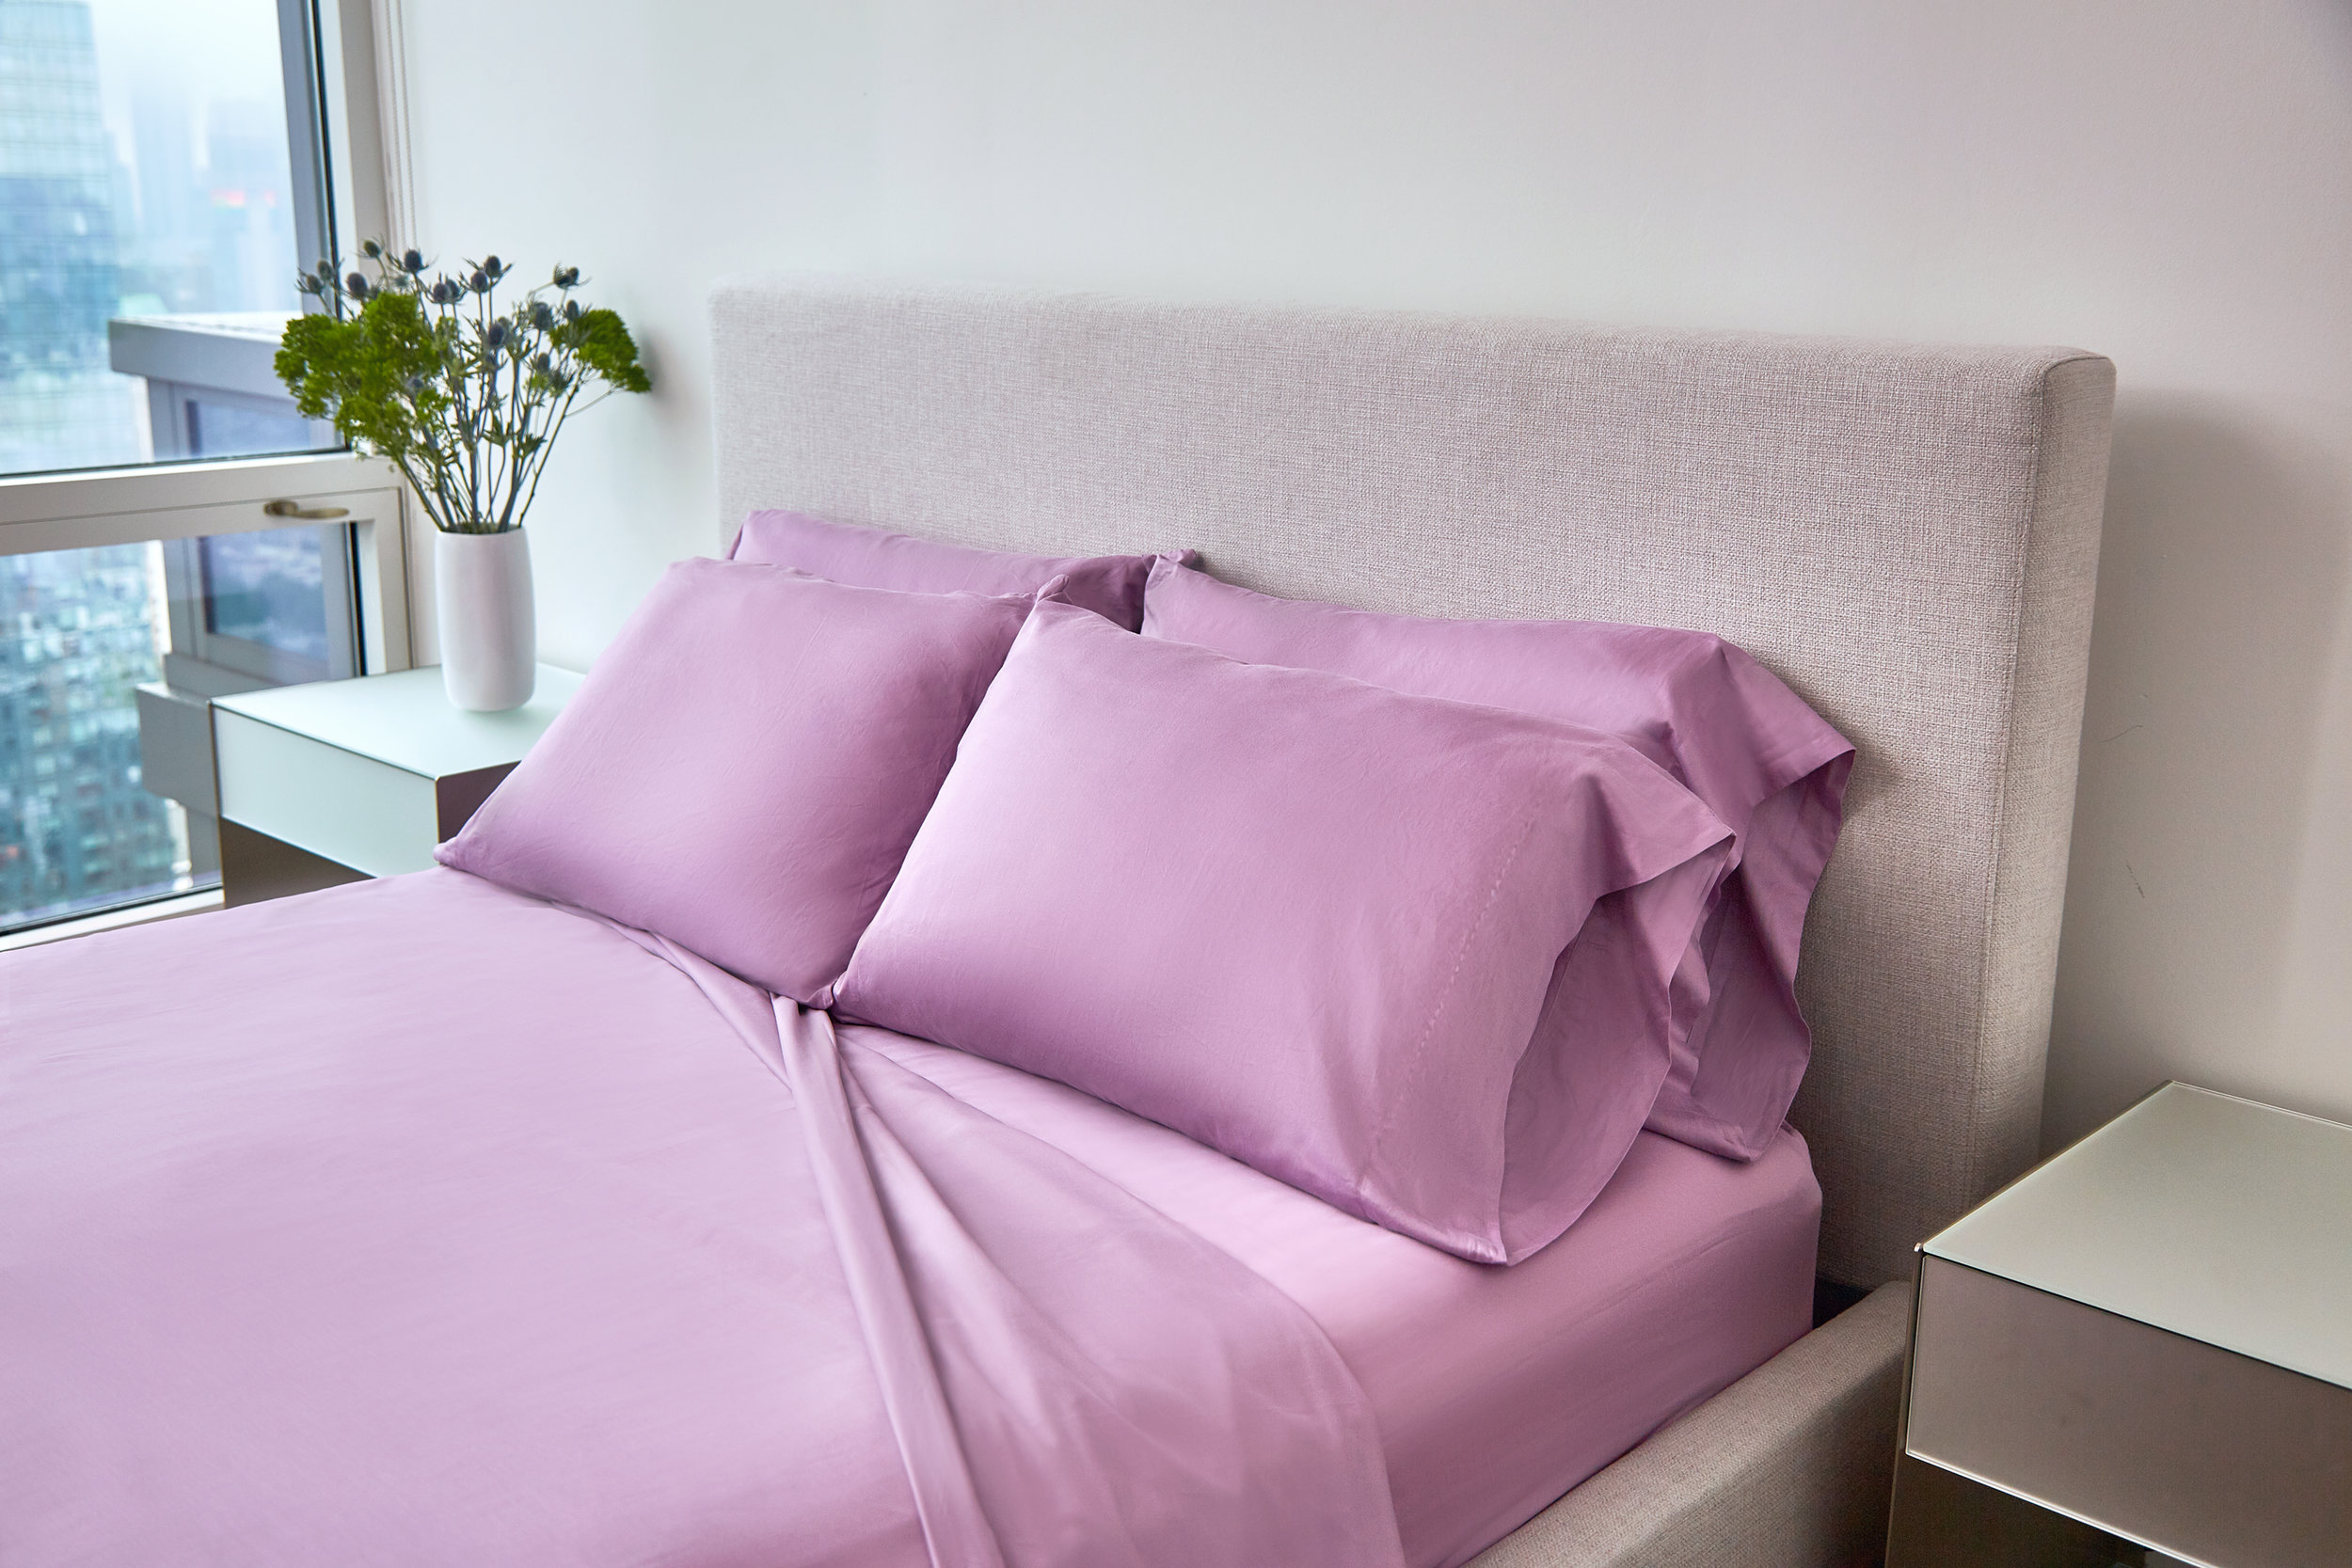 Farm-to-Home_Bed-sheets_Lavender1282_xret4.jpg